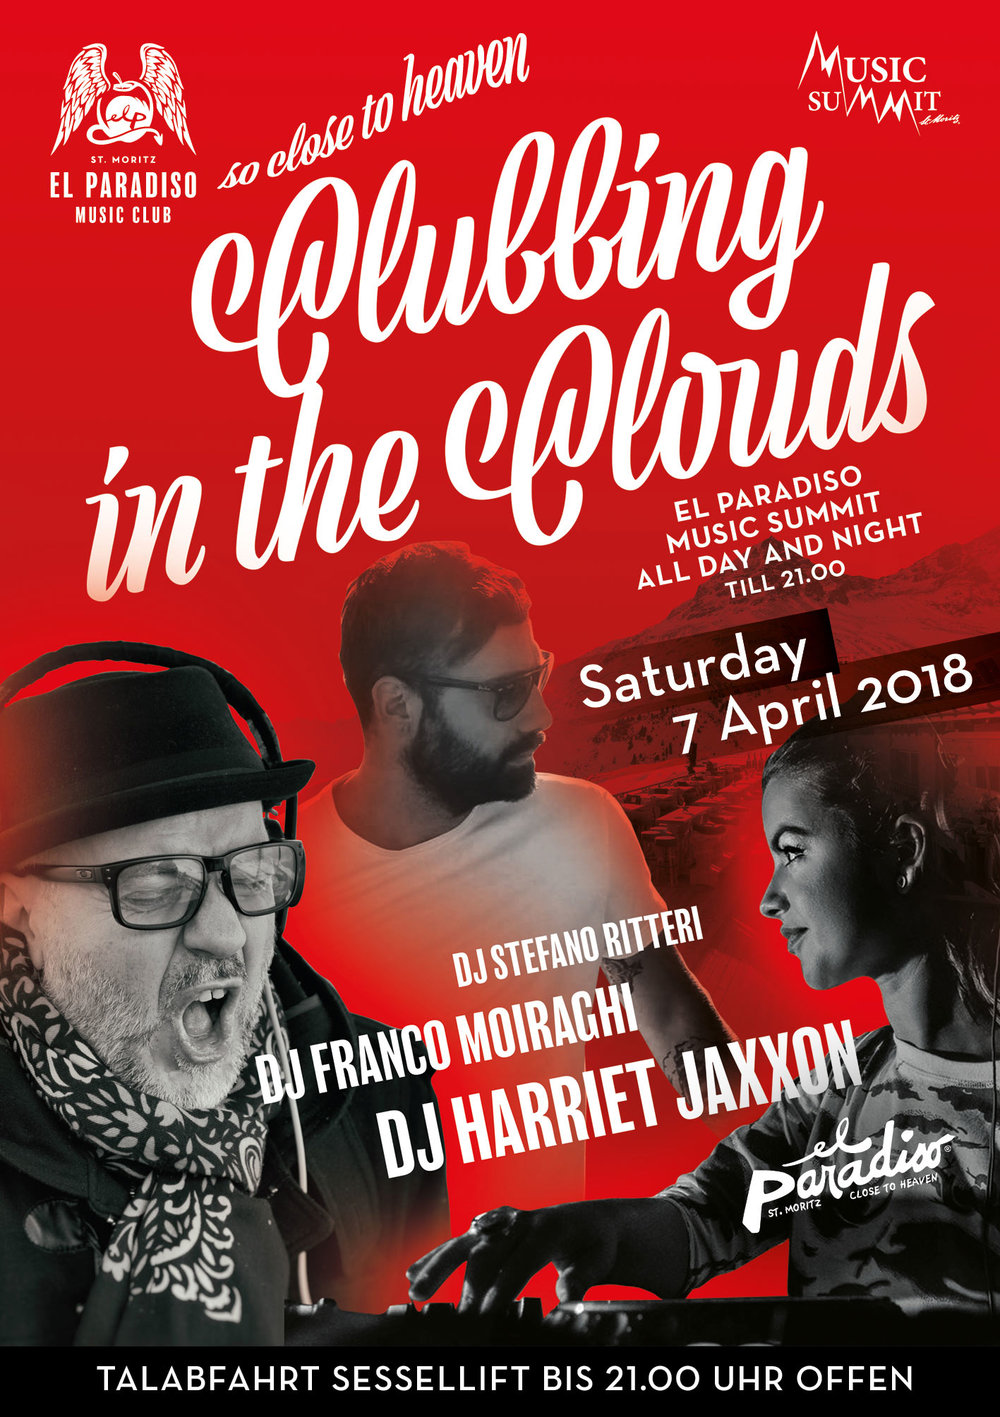 elparadiso-clubbing-in-th-clouds-music-summit-2018.jpg